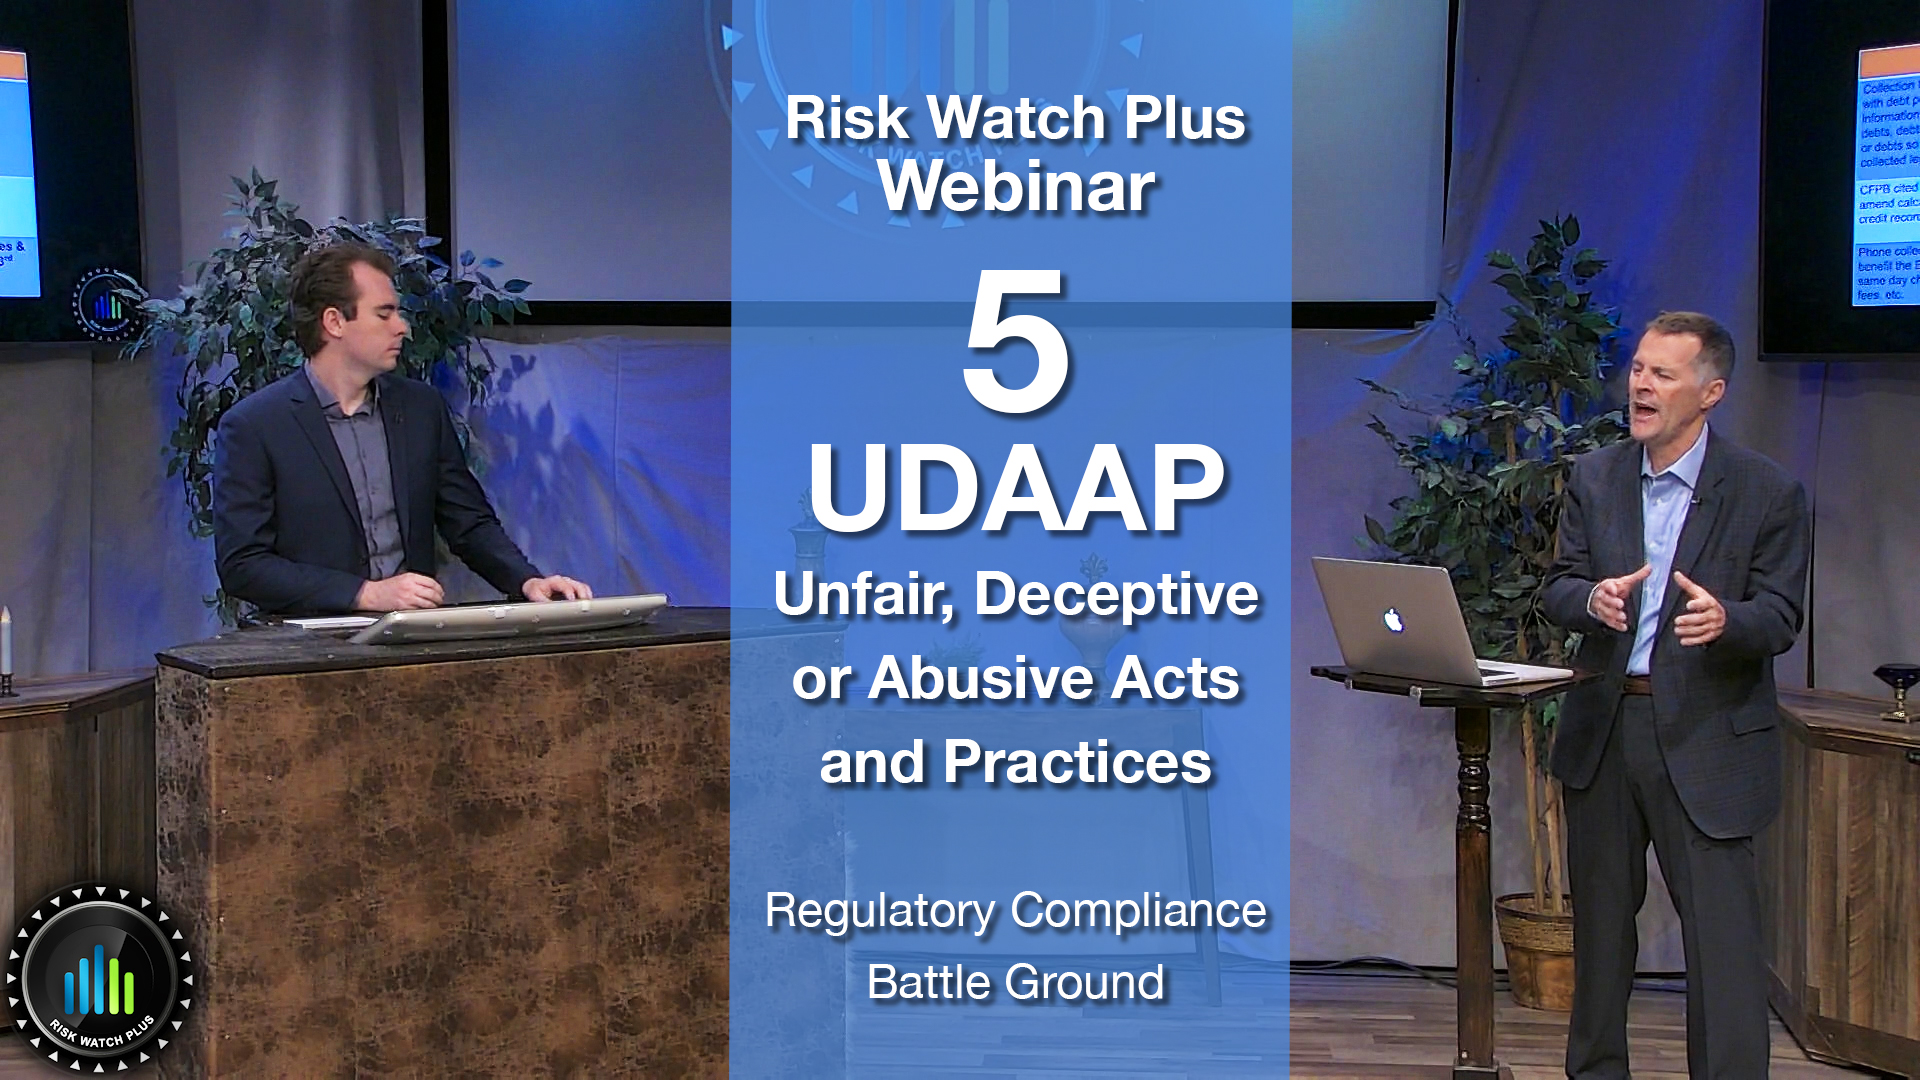 Risk Watch Plus Webinar 5: UDAAP (Unfair, Deceptive, or Abusive Acts and Practices) (Certificated)